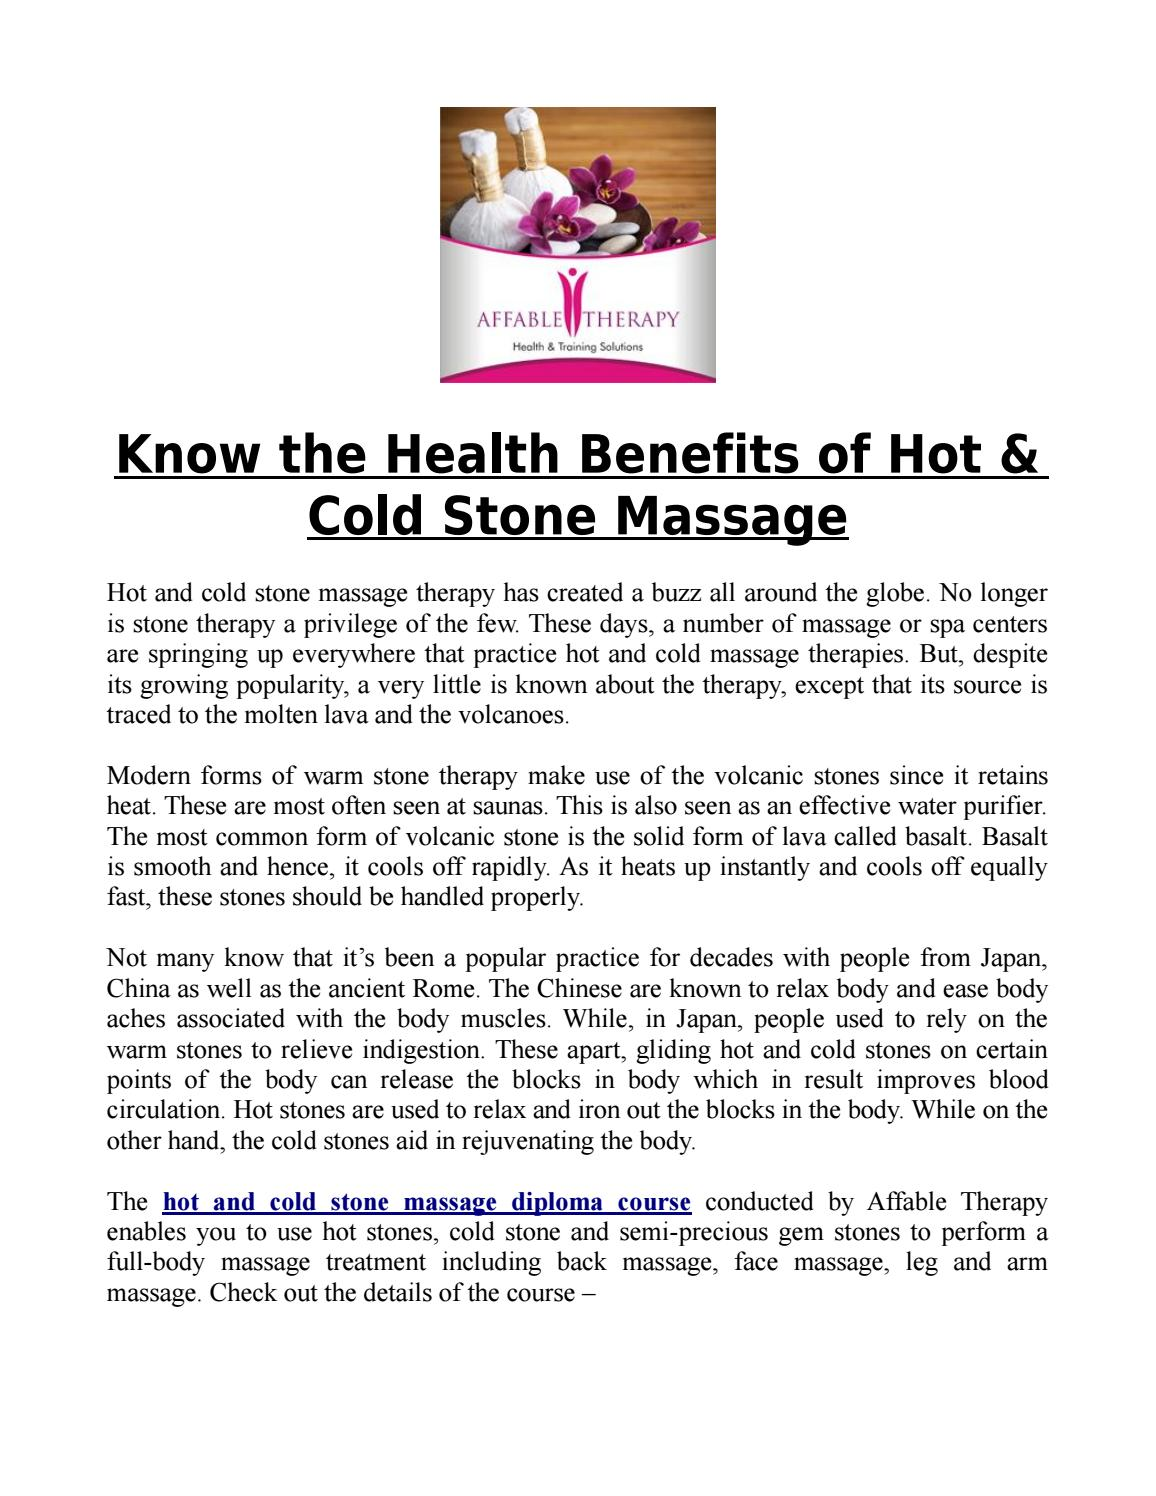 Know the Health Benefits of Hot & Cold Stone Massage by Affable ...